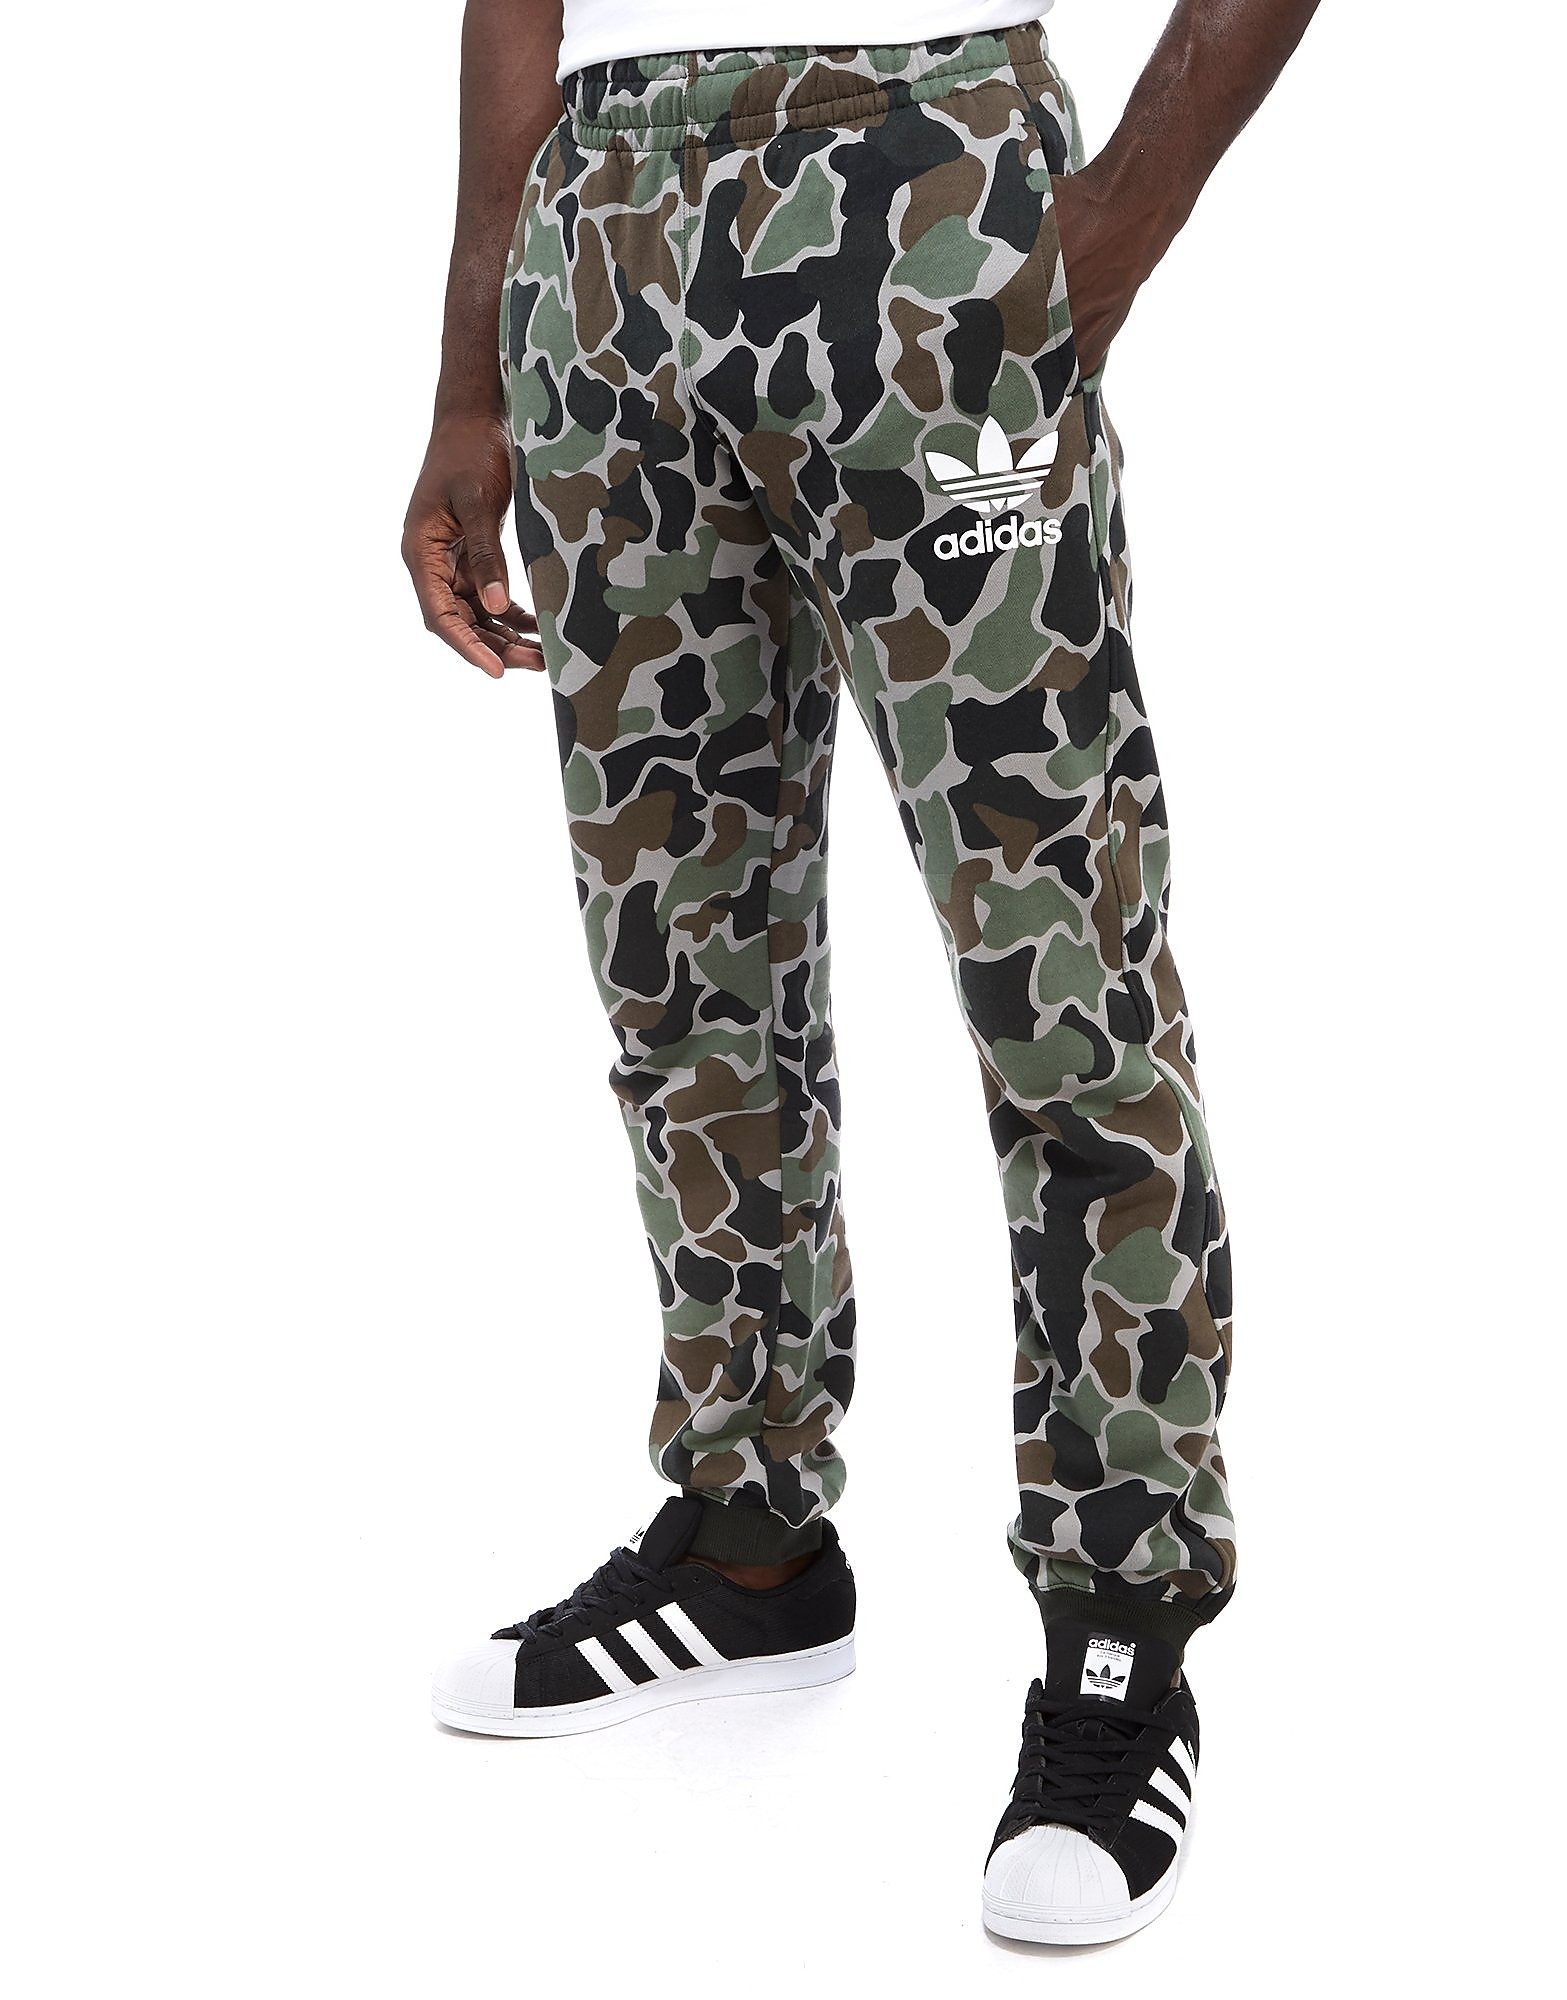 adidas Originals Camo Joggers - Camouflage Green/Grey/Black/Brown, Camouflage Green/Grey/Black/Brown